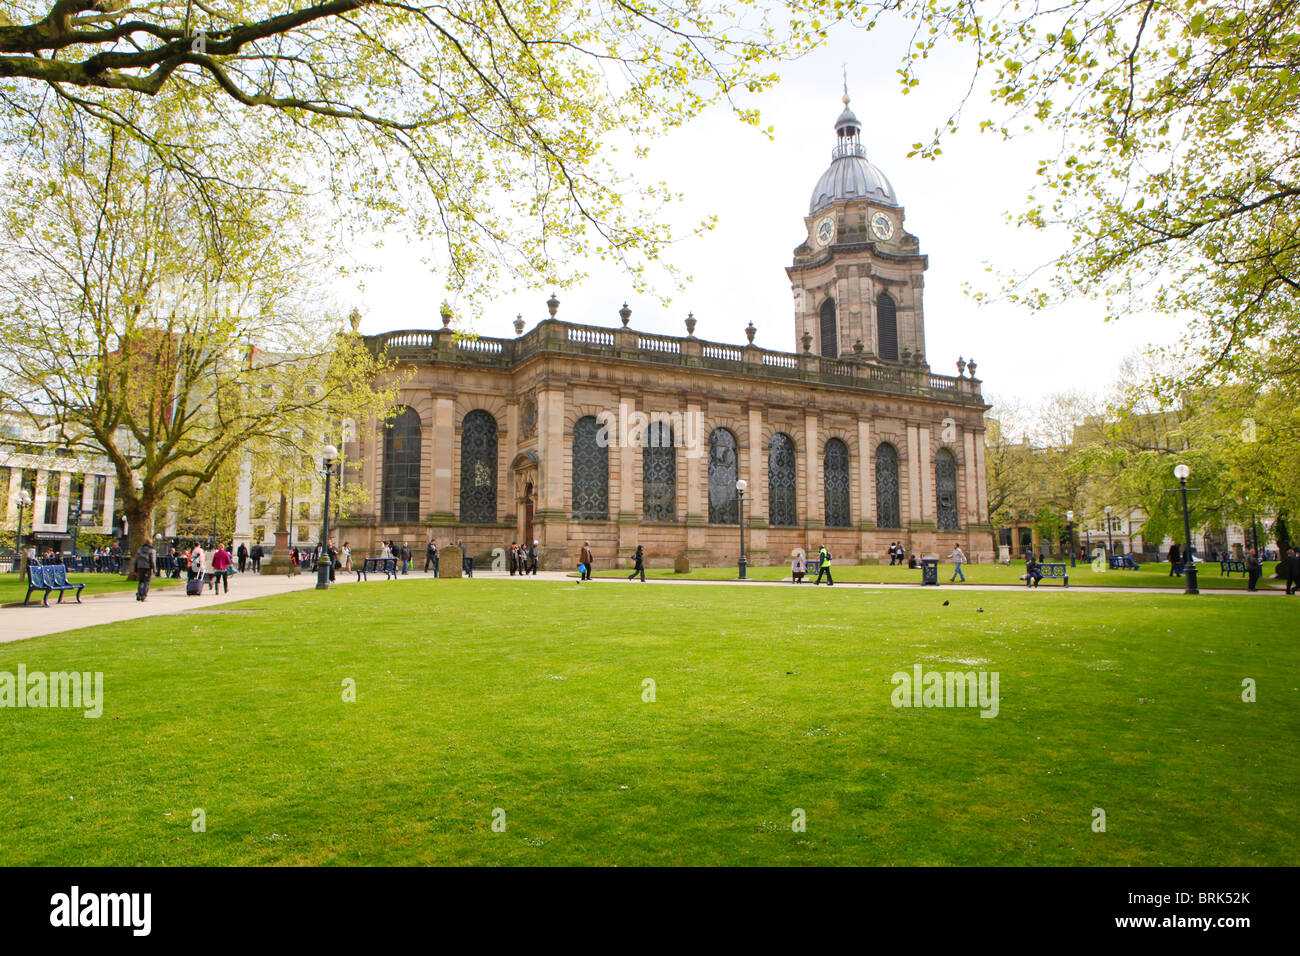 St Phillips Anglican Cathedral, off Colmore Row, Birmingham, West Midlands, England, UK - Stock Image